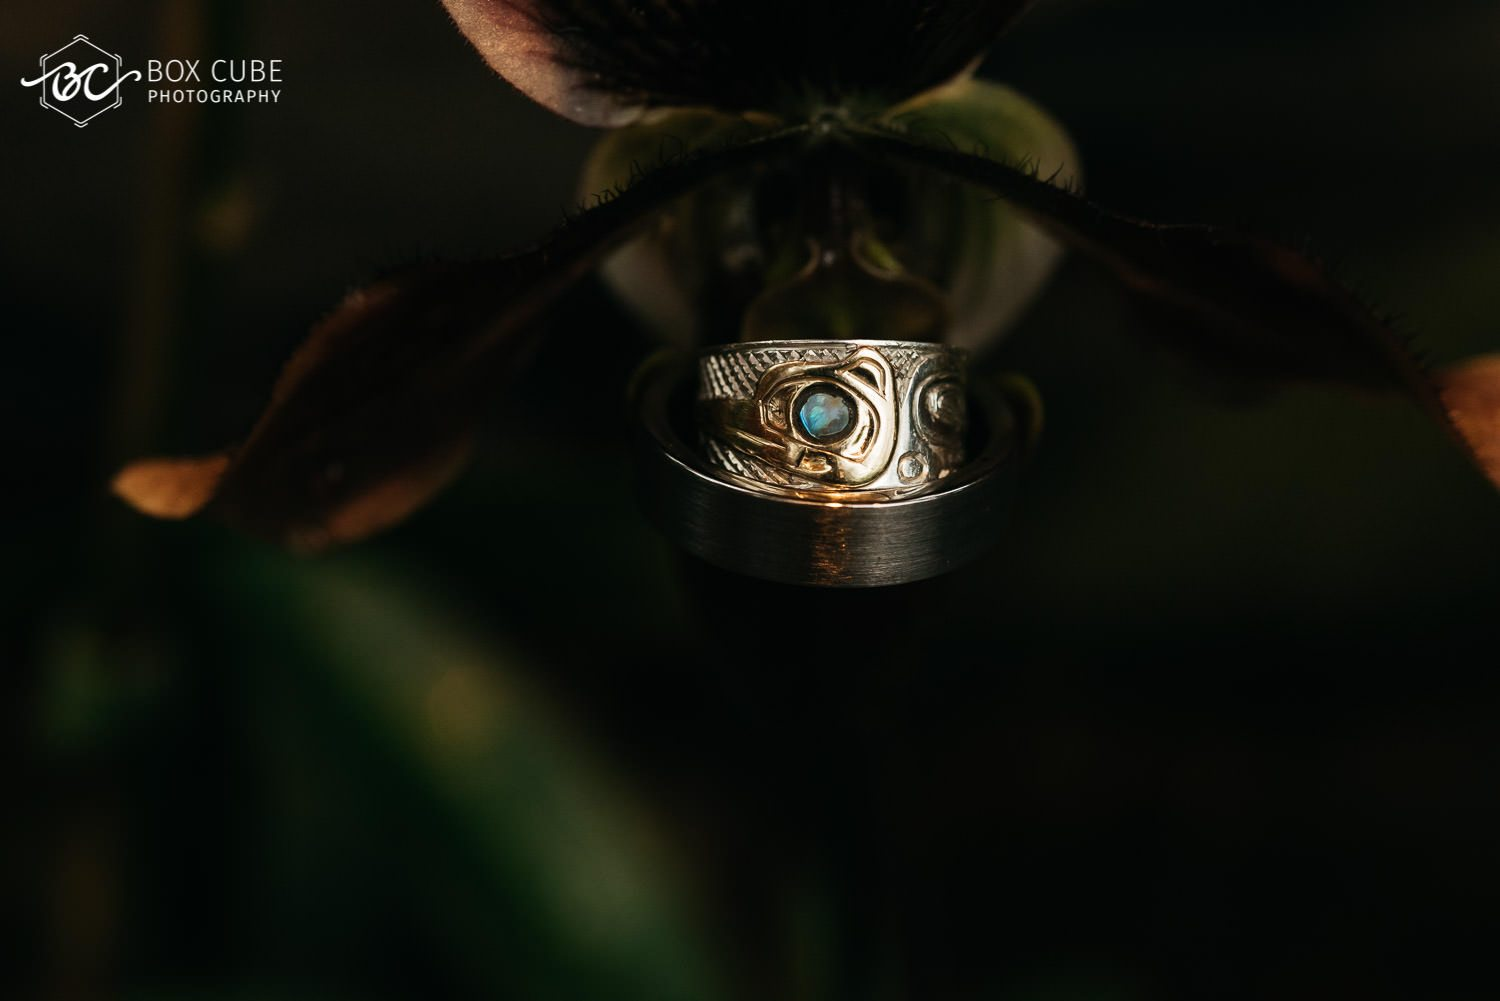 ring shot as the ring is placed inside a flower